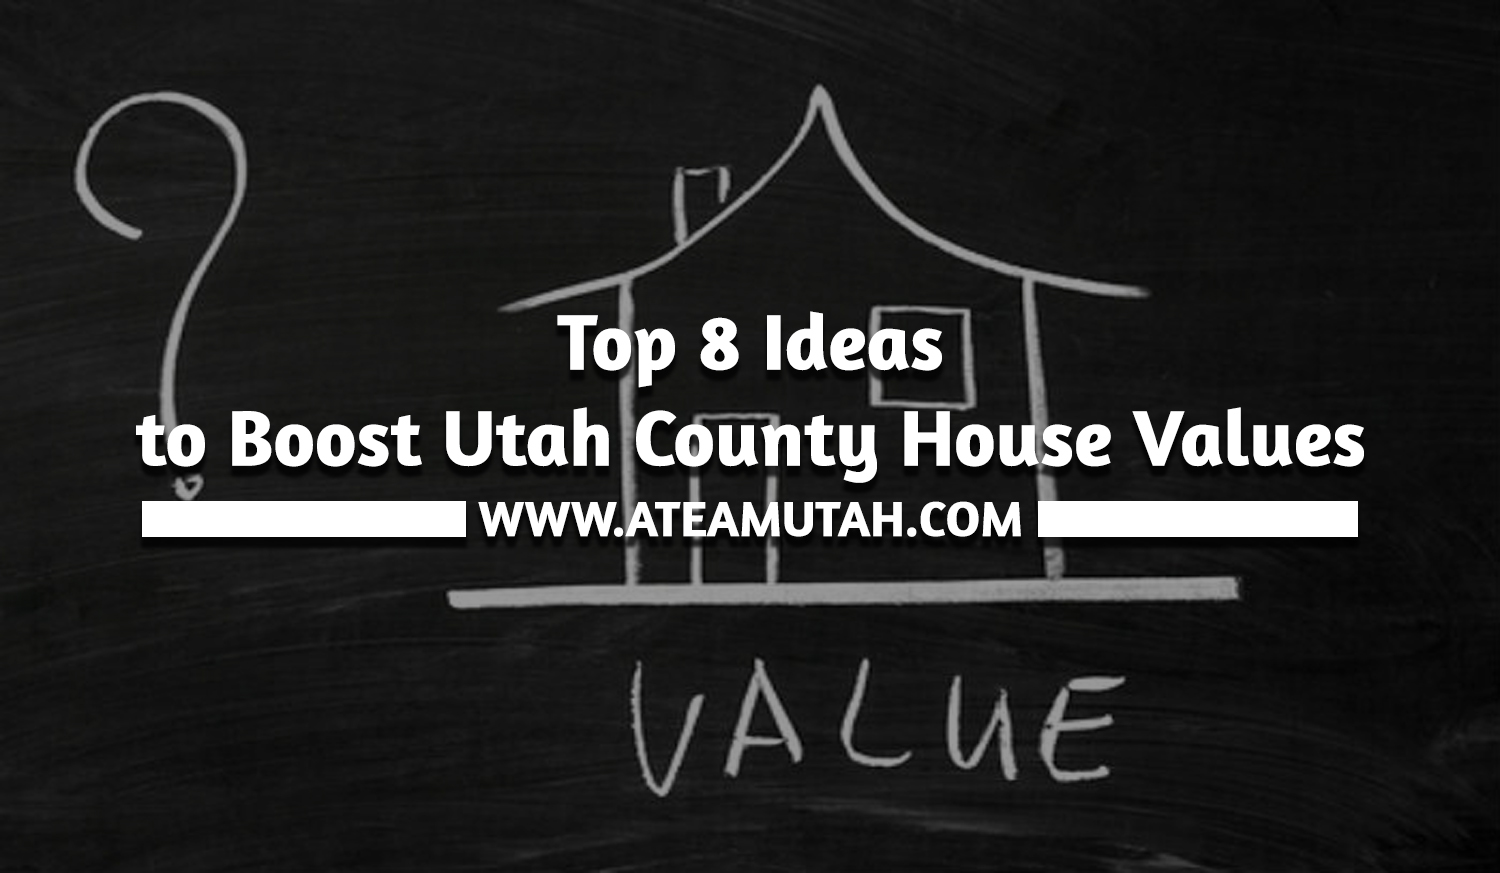 Top 8 Ideas to Boost Utah County House Values